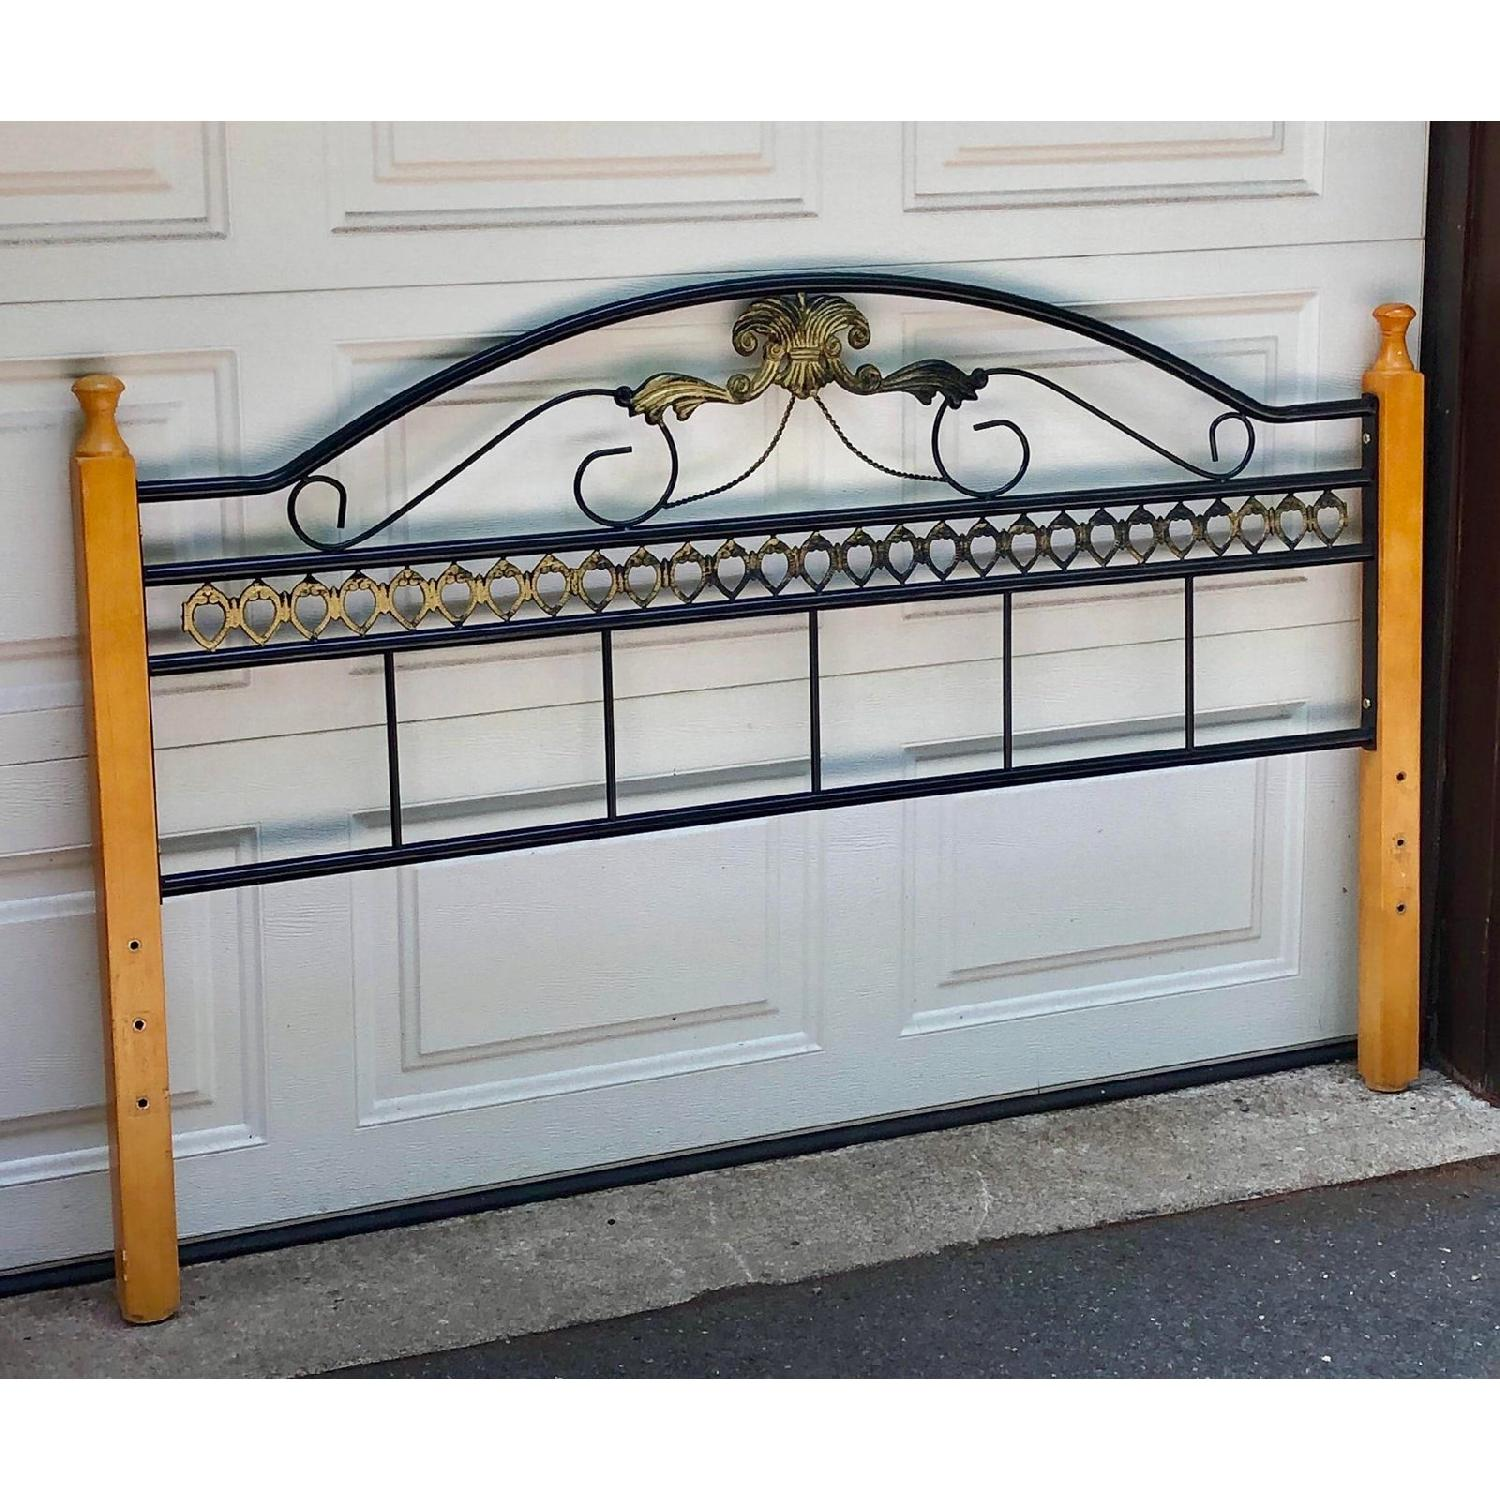 Fleur De Lis Oak & Rod Iron Scrolled Headboard & Footboard - image-7